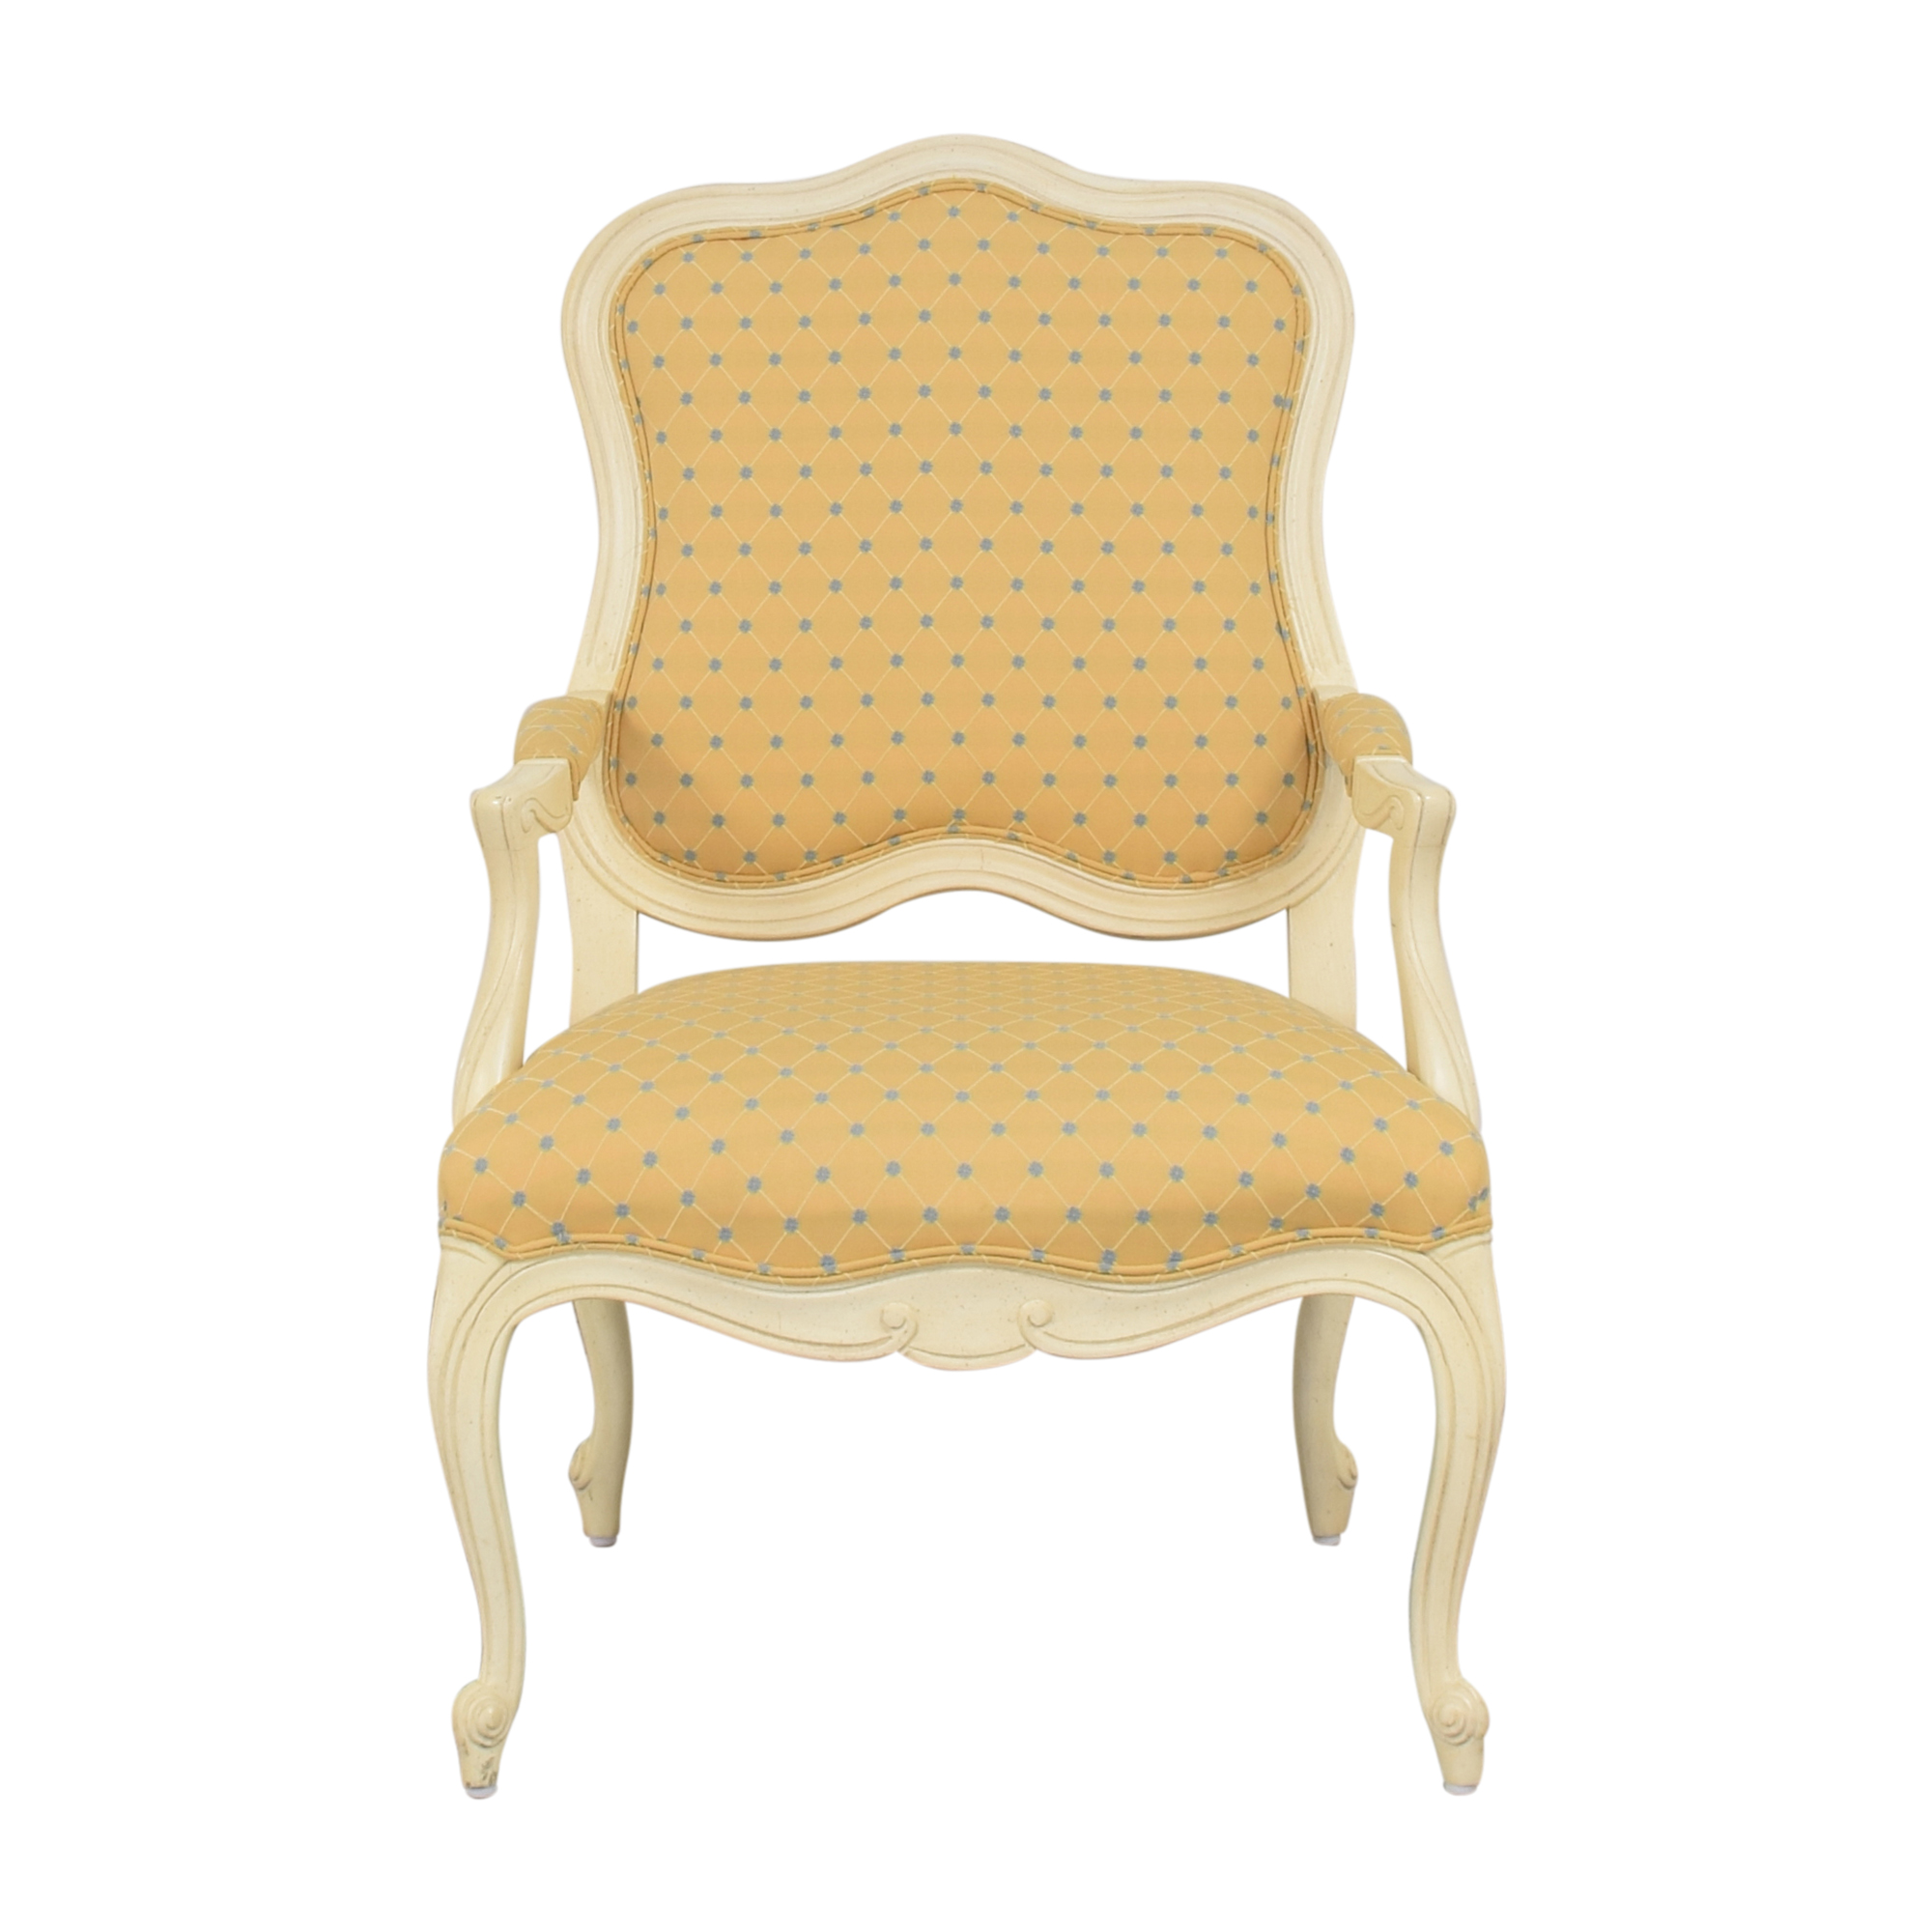 Ethan Allen Chantel Chair / Accent Chairs